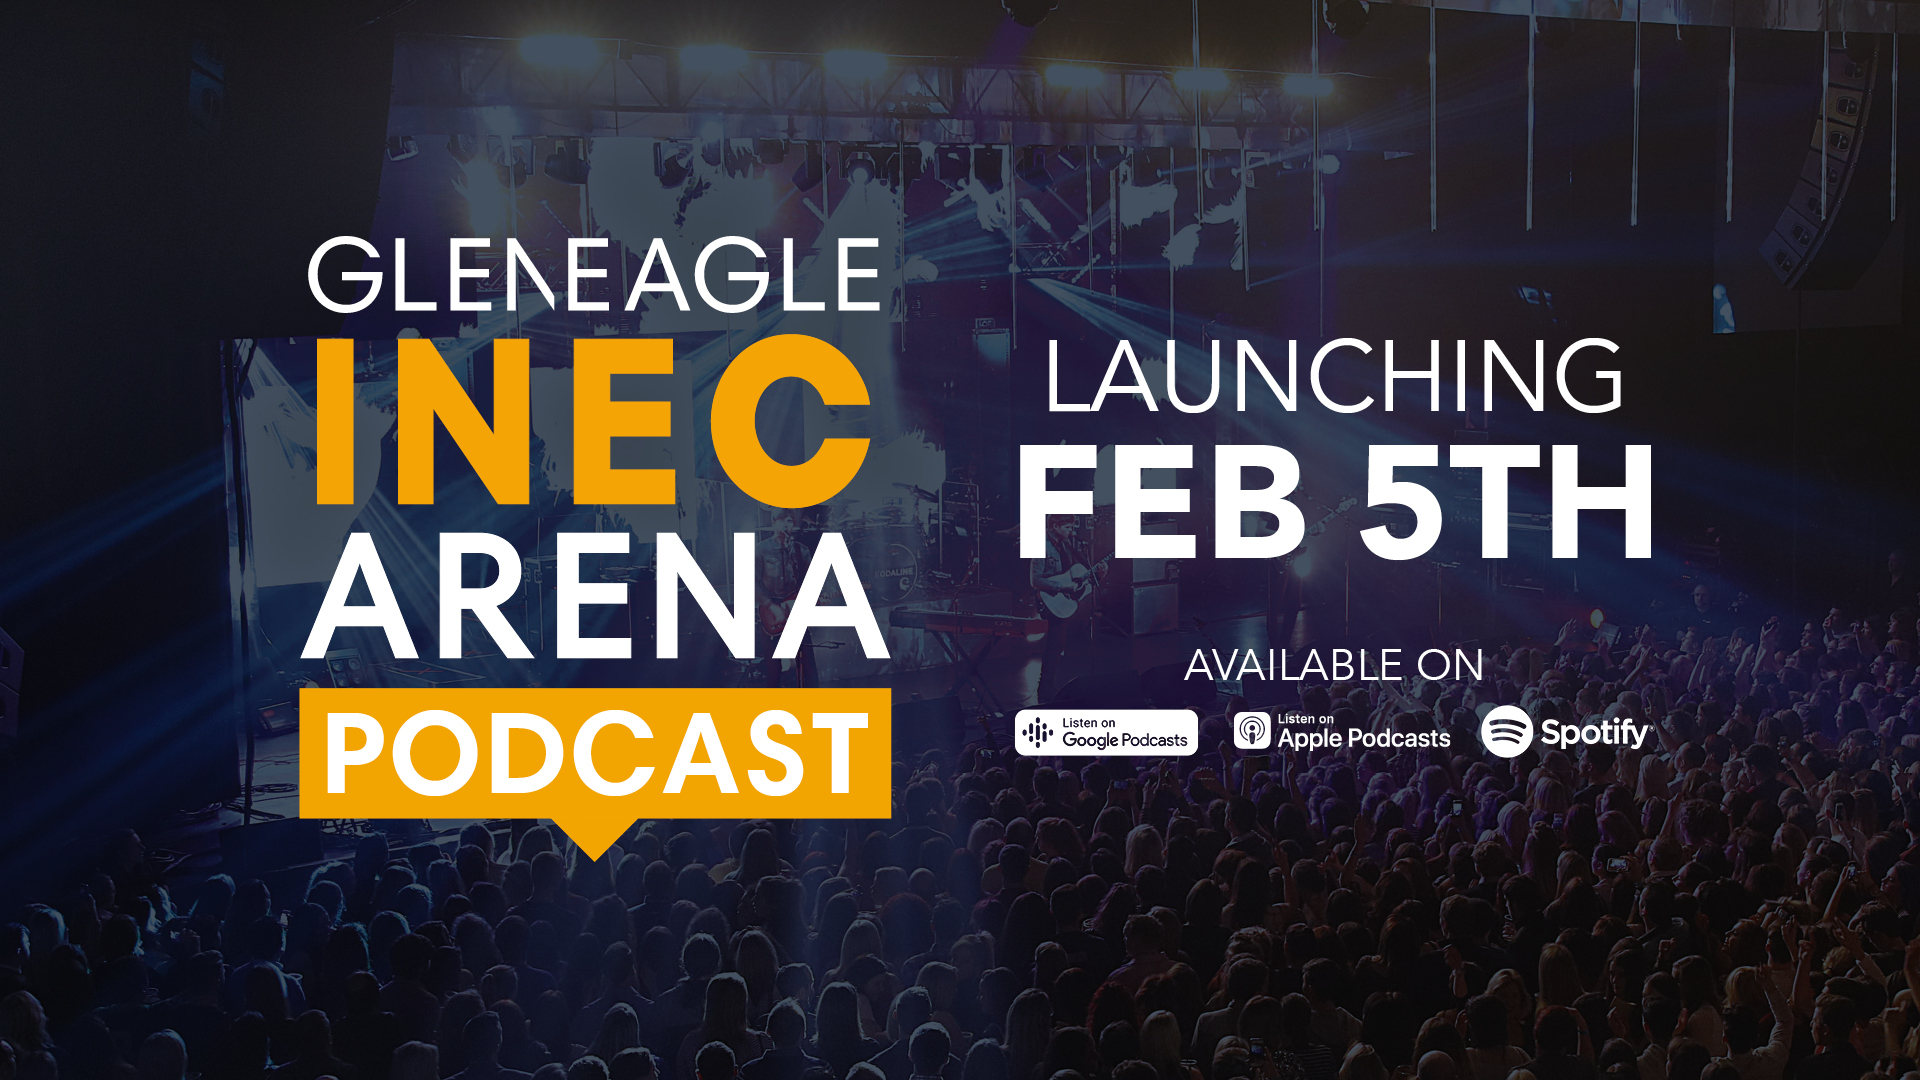 Gleneagle INEC Arena to Launch Podcast